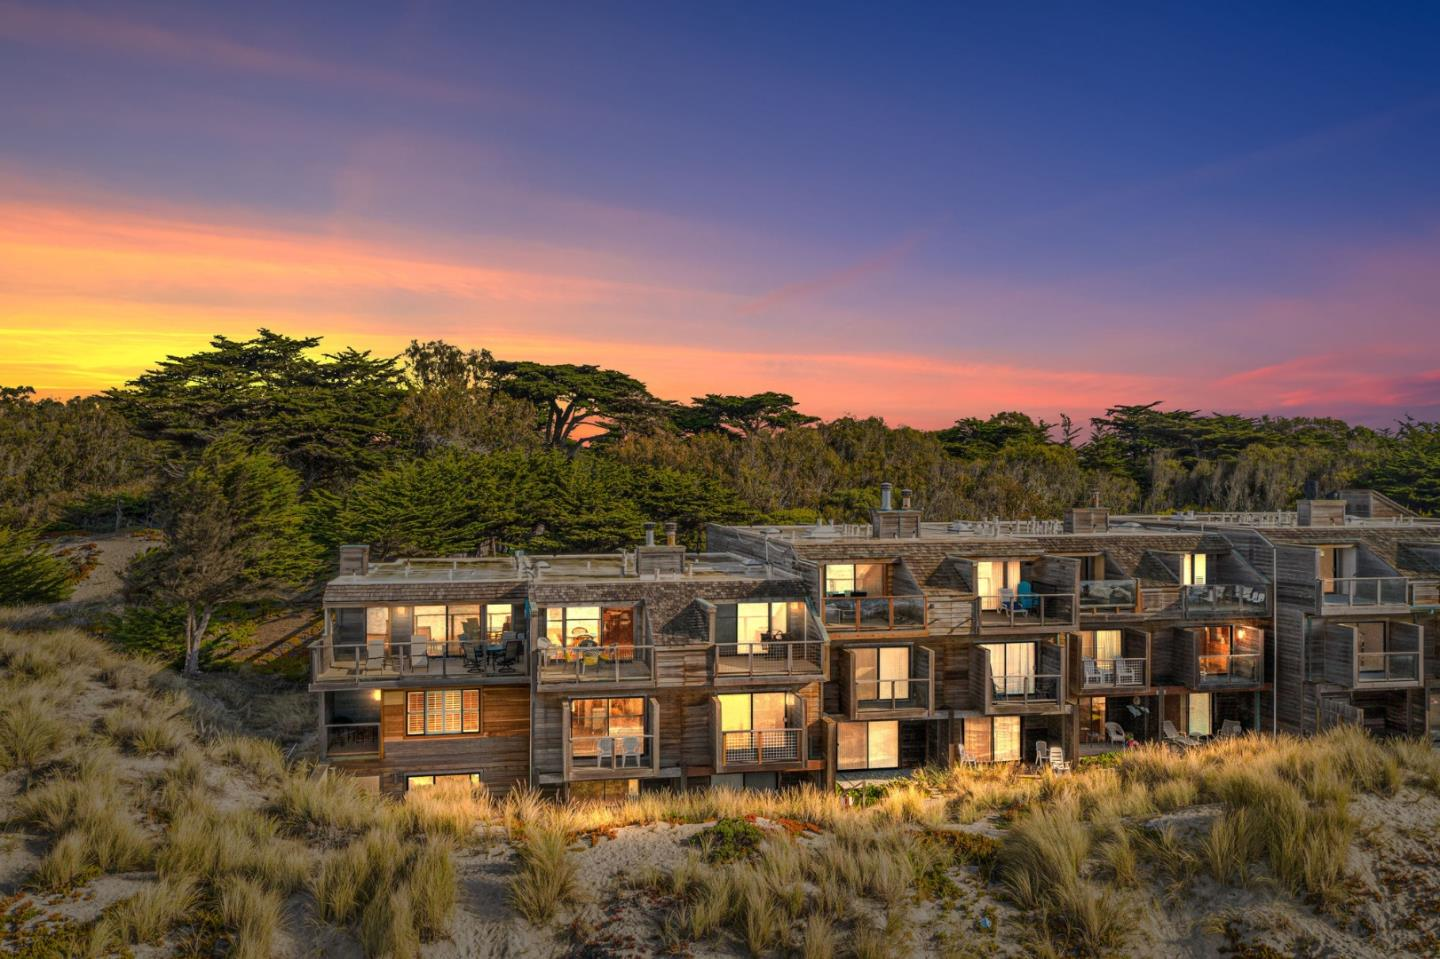 Welcome to Pajaro Dunes, a gated beach community sitting between Santa Cruz and Monterey. This 3-story townhome sits OCEAN FRONT with stunning 180 degree water views of the Bay! It offers 4 large bedrooms, each with it's own private bathroom- Ideal for vacation renters! You will love the open floor plan upstairs, with a wood burning fireplace, wet bar & skylight. Enjoy a glass of wine on your private balcony while watching the waves crash. If you are looking for an incredible vacation experience for your family or looking to purchase an investment property, then 2 Cypress Grove is a perfect fit. So kick your shoes off, turn your phone on silent, and enjoy the Coastal lifestyle you've been dreaming of!